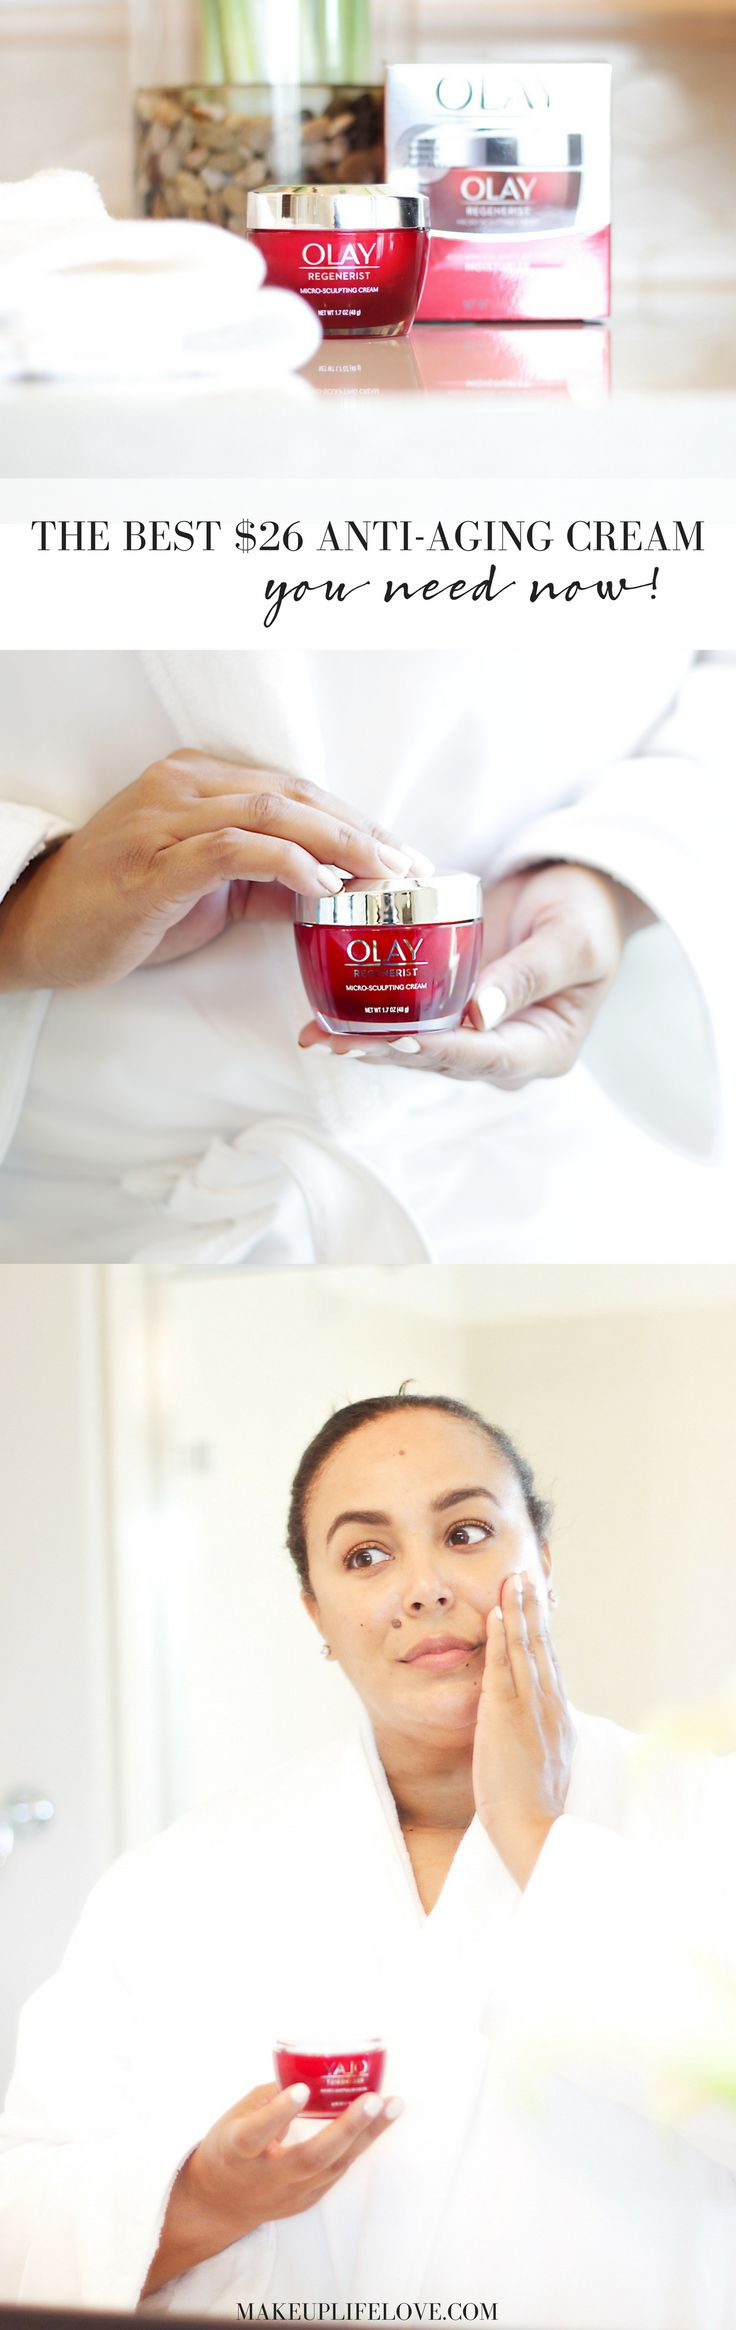 On the quest for younger looking skin? No worries, check out my top seven tips of anti-aging secrets + the best anti-aging cream EVER under $26!